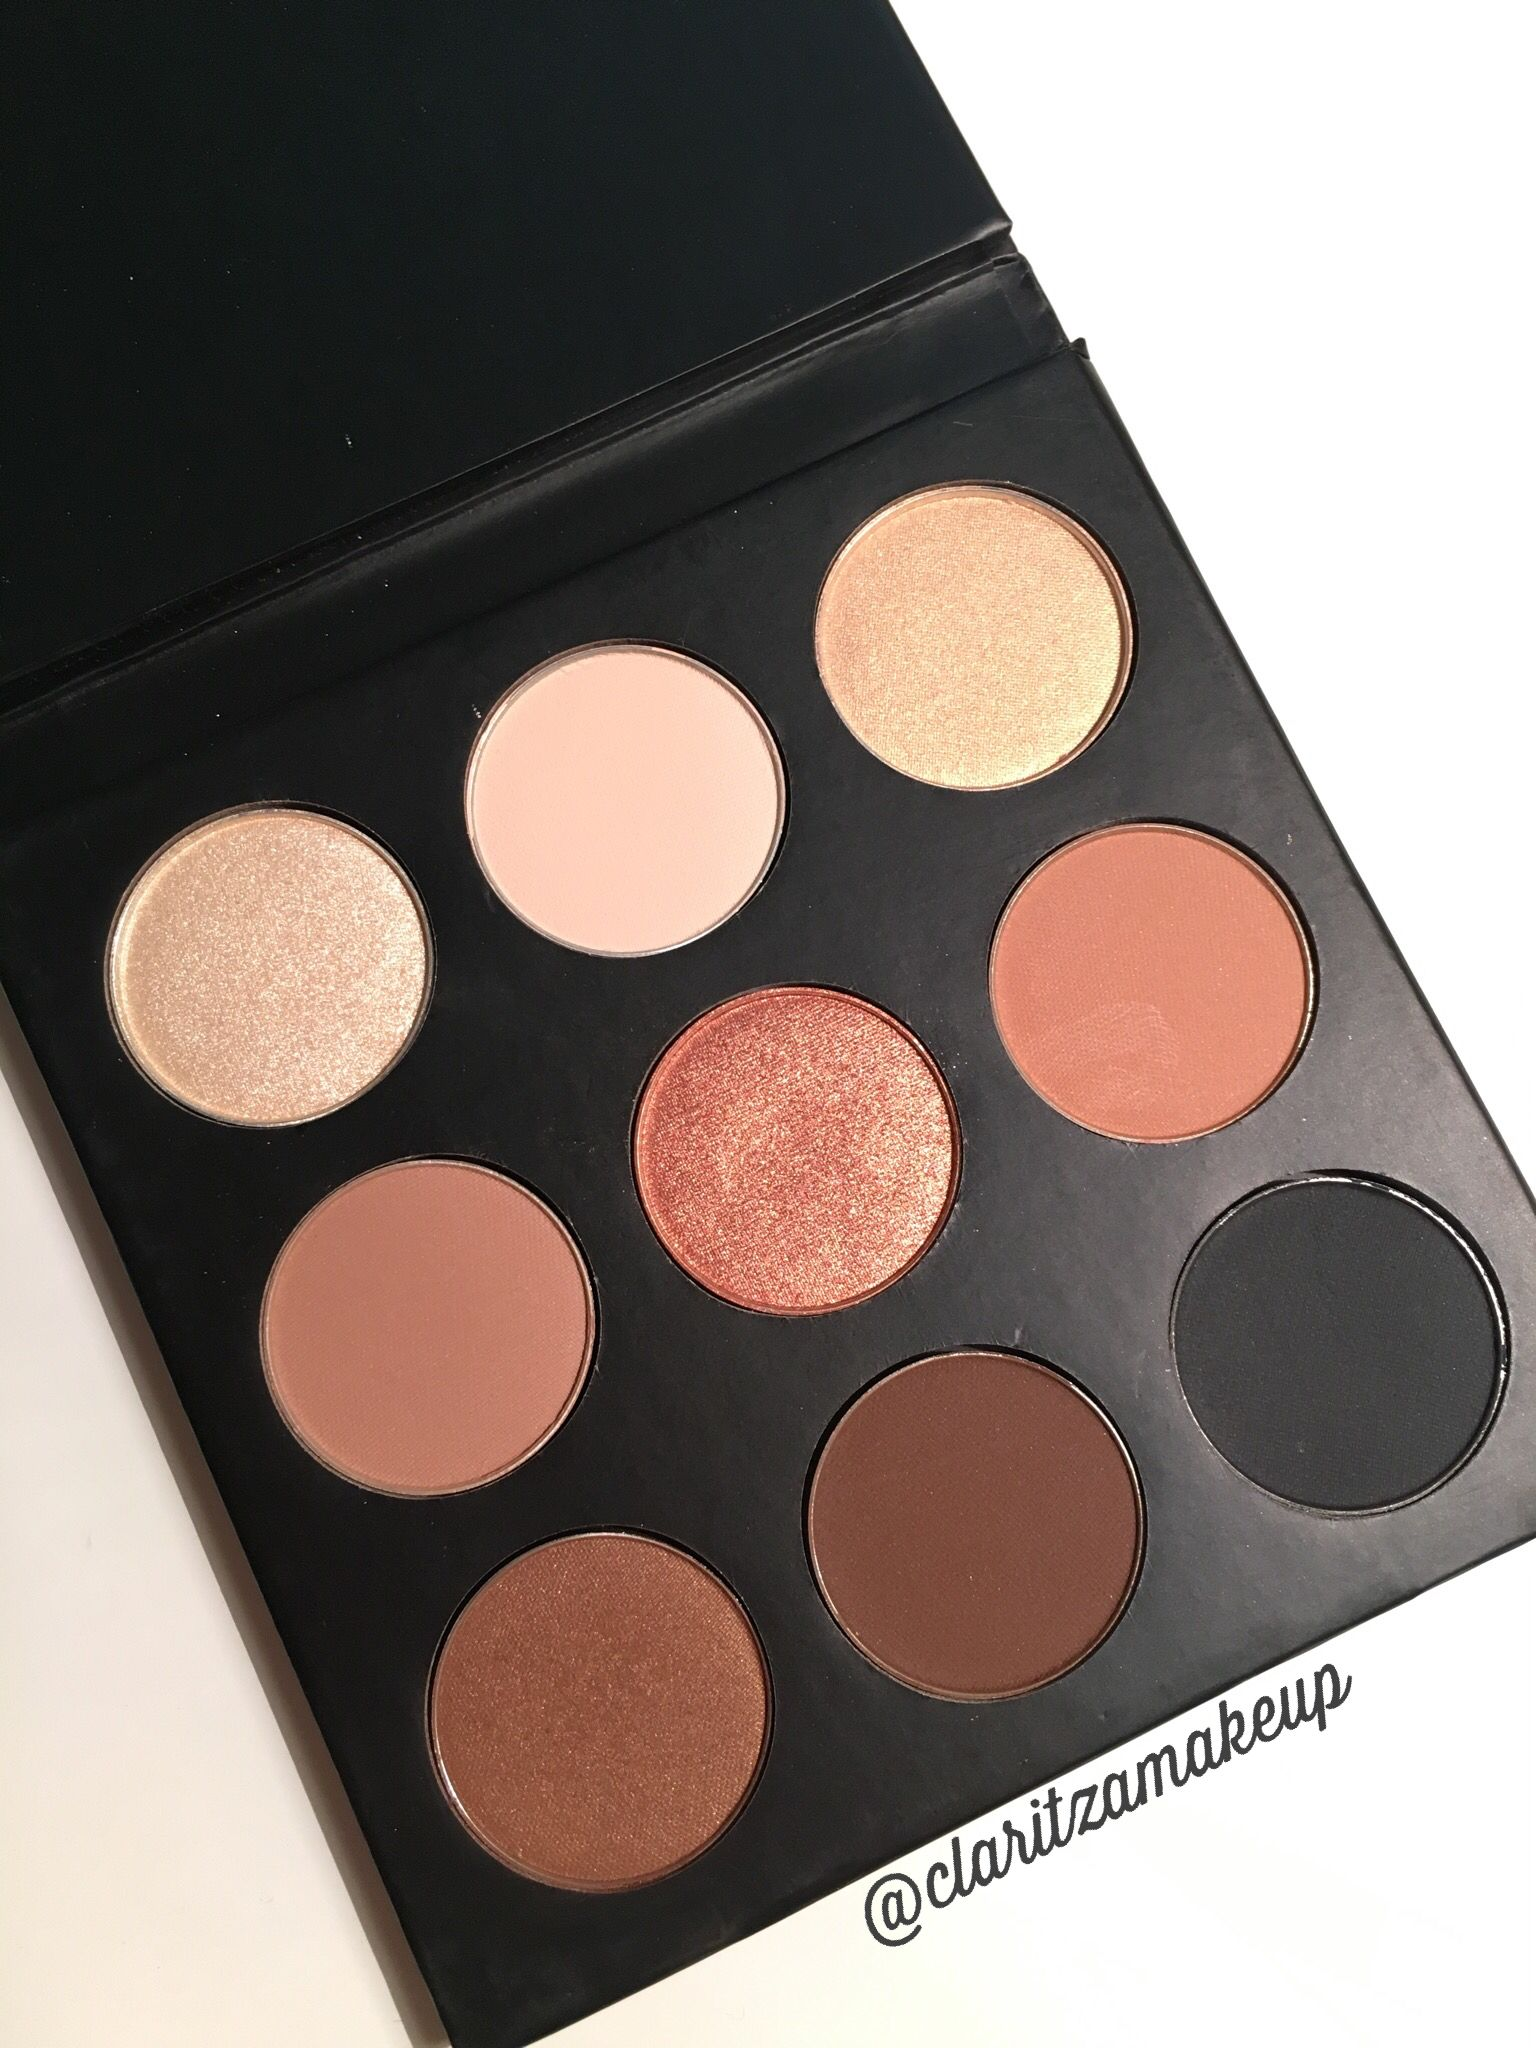 Studio Makeup's palette that came in Septembers BoxyCharm